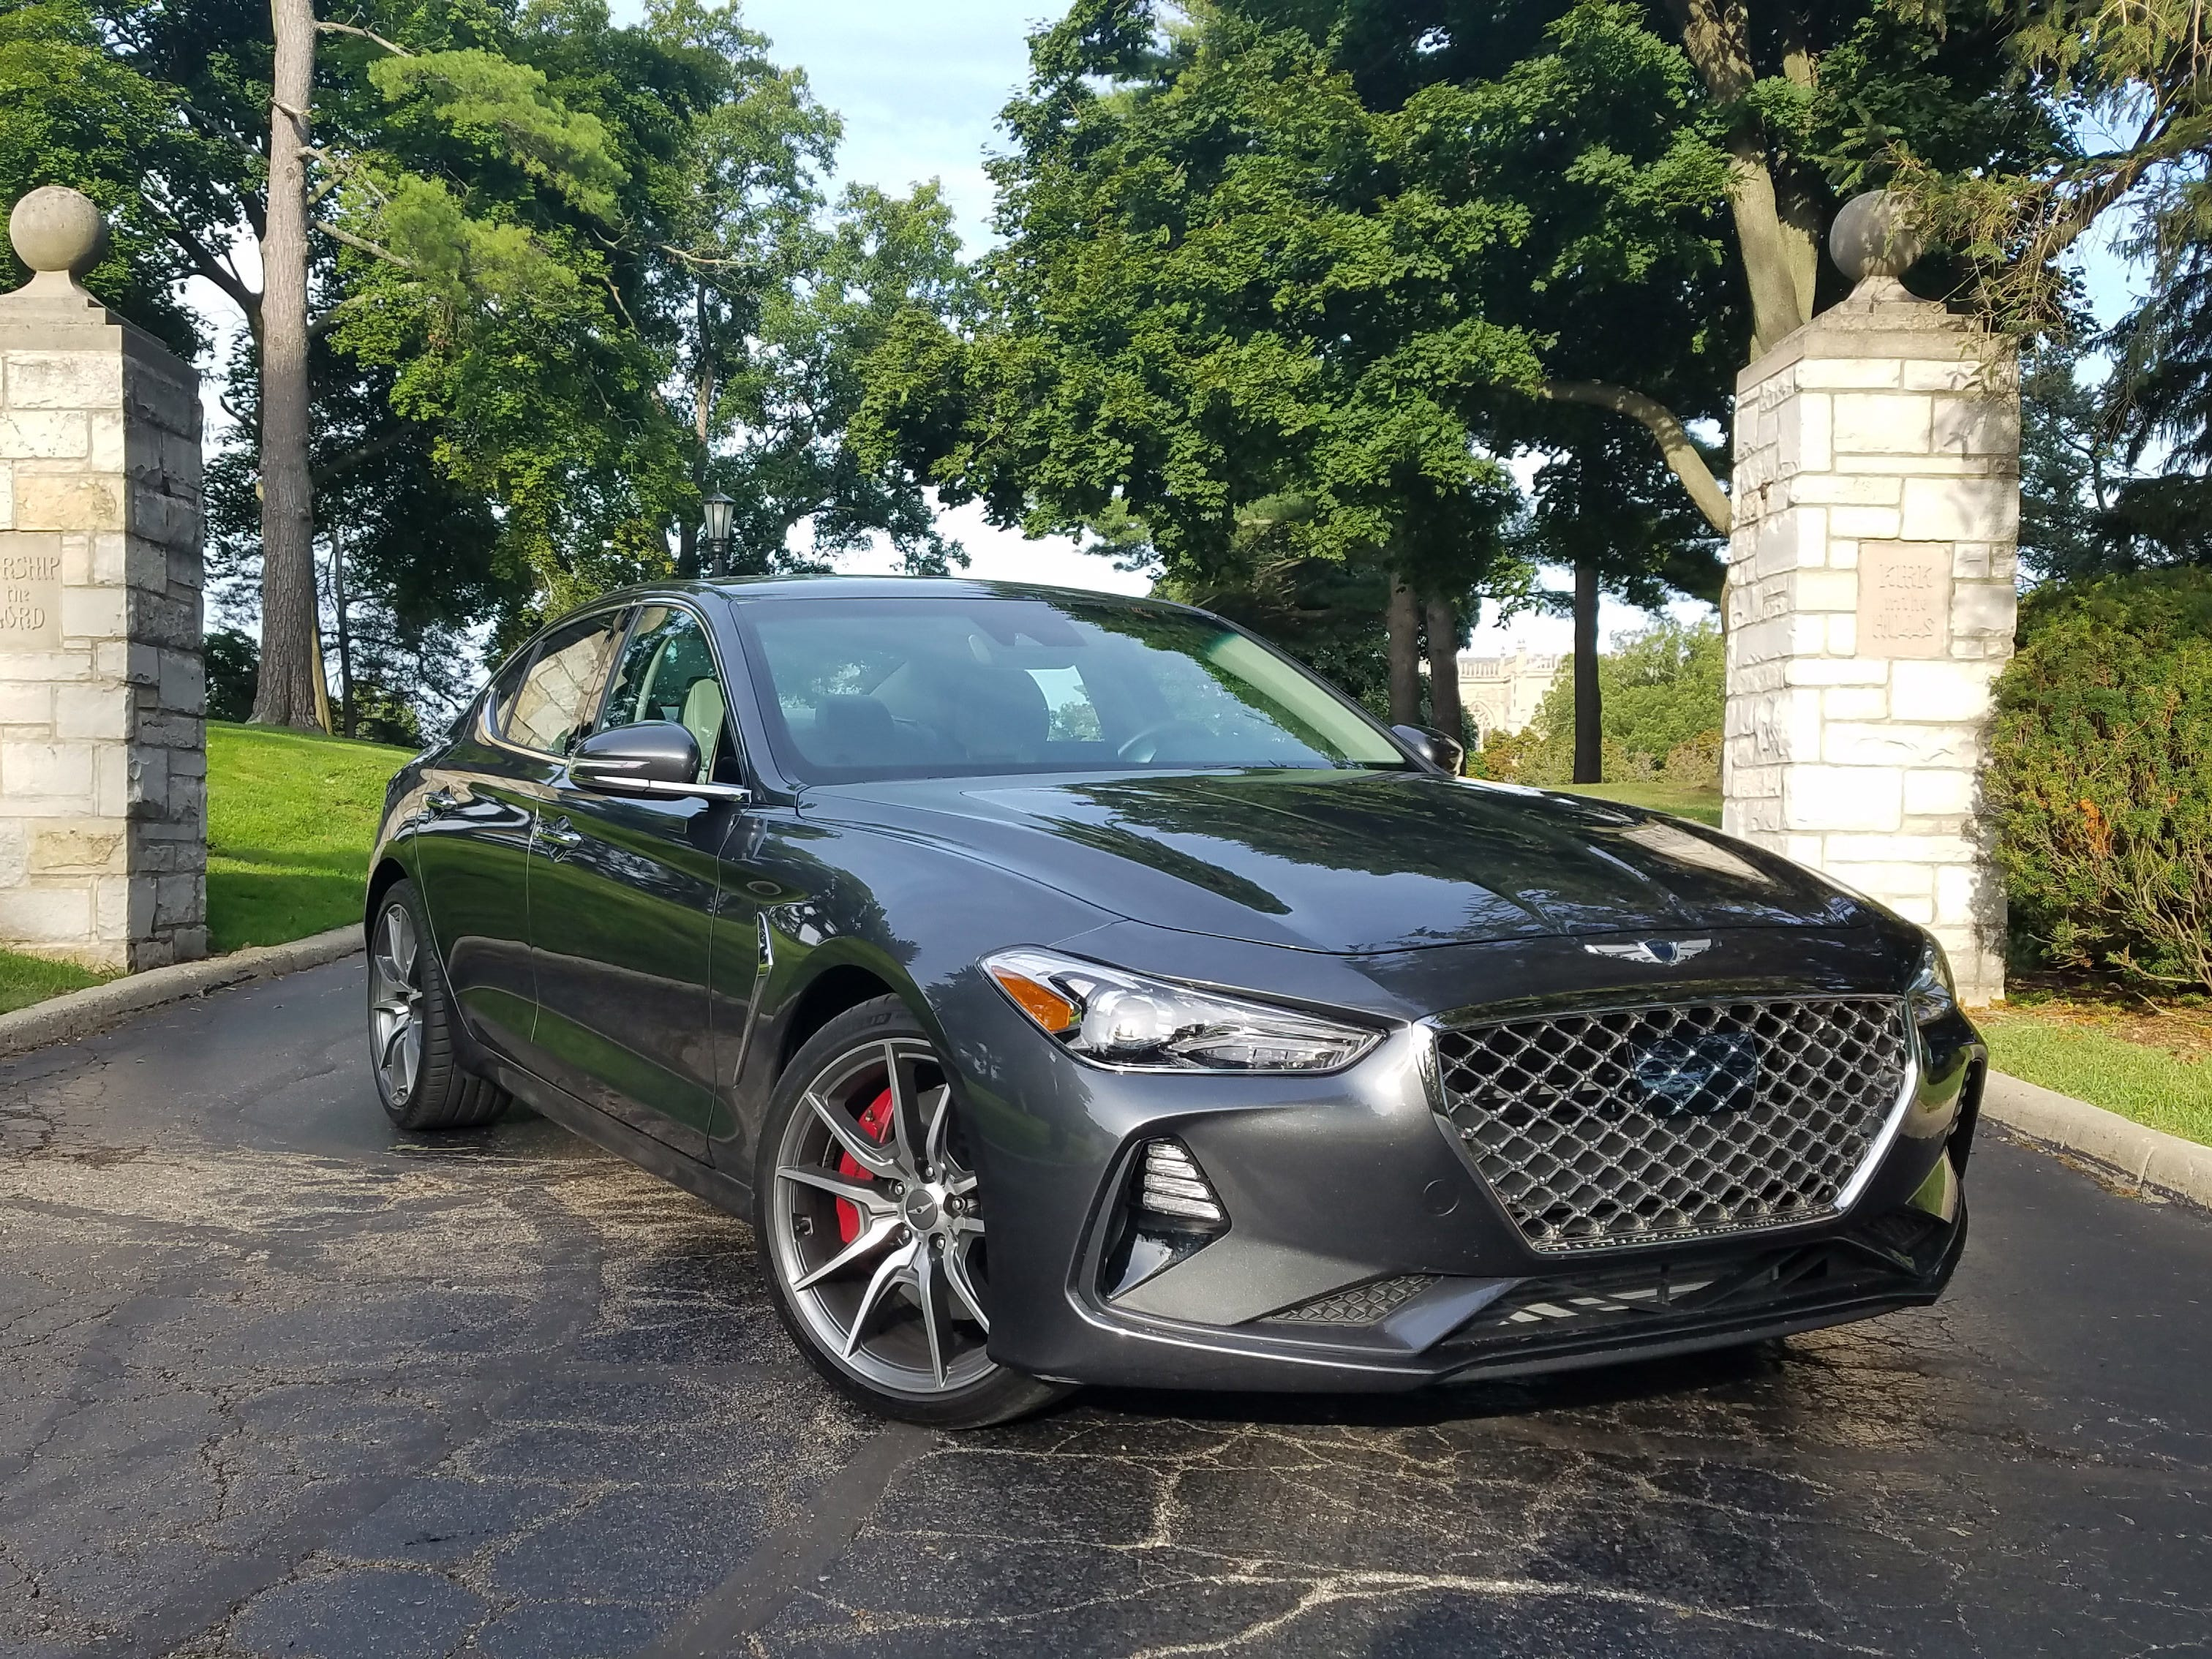 The 2019 Genesis G70 is the premium brand's entry-level sedan. Starting at $32,000 it brings value to the segment with multiple standard features as well as a 100,000-mile drivetrain warranty.